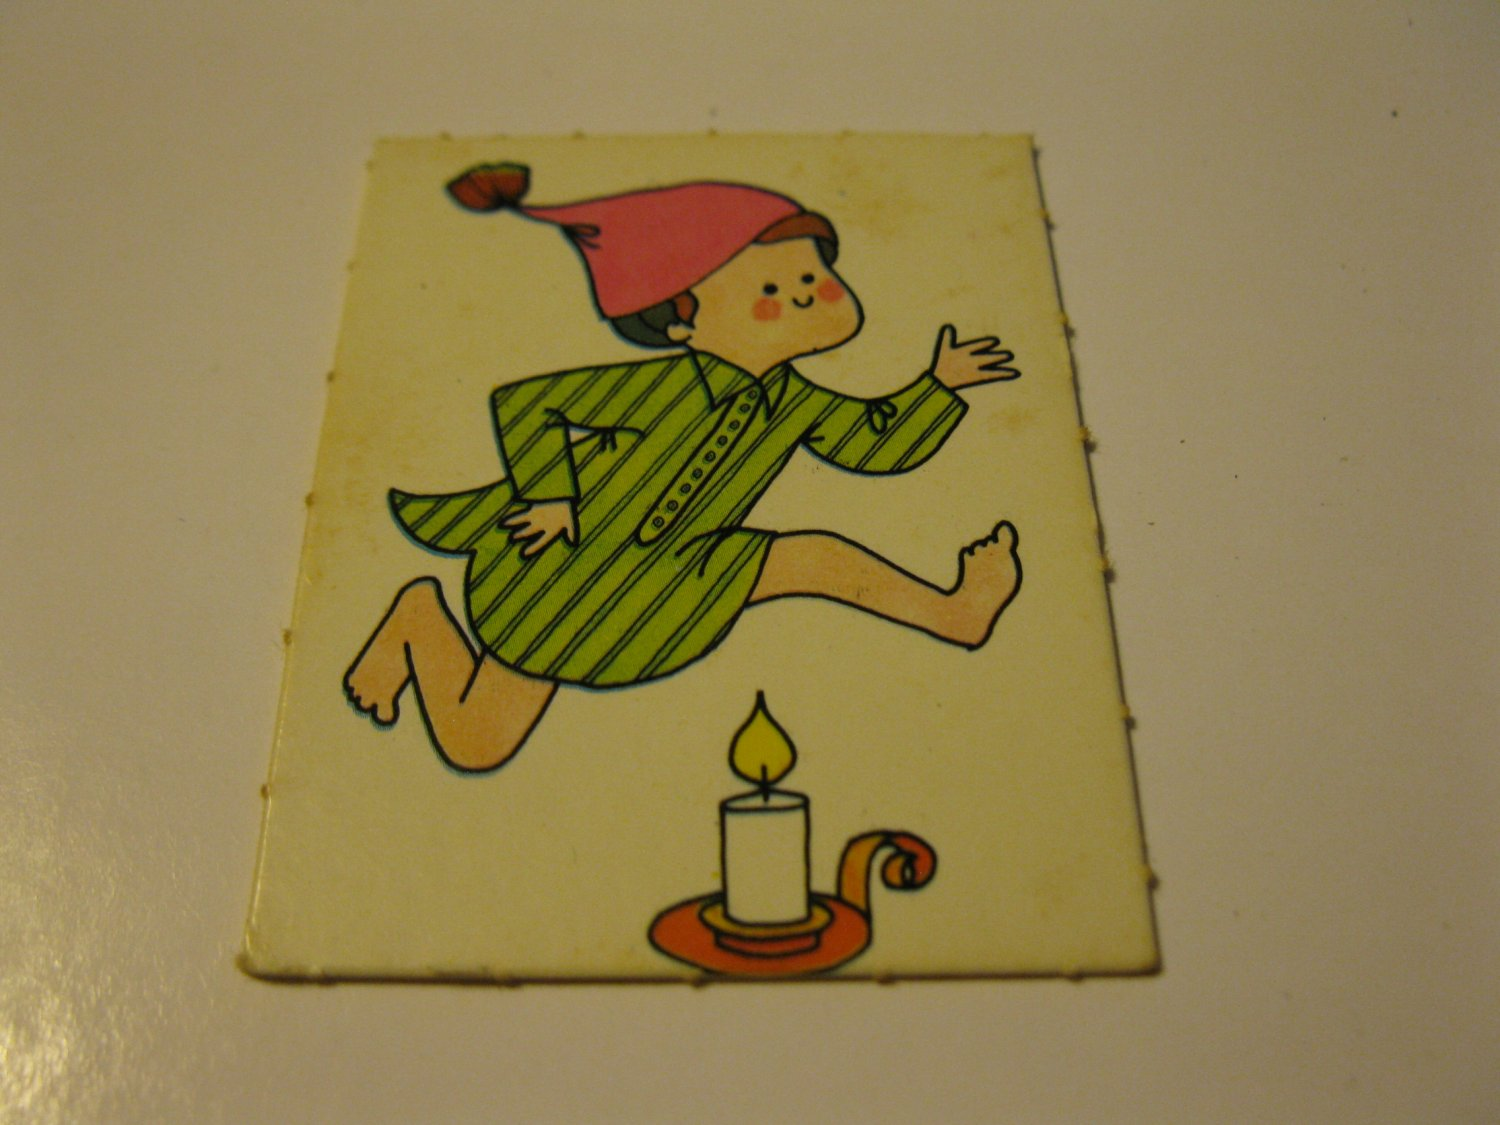 1971 Mother Goose Board Game Piece: Game card #3